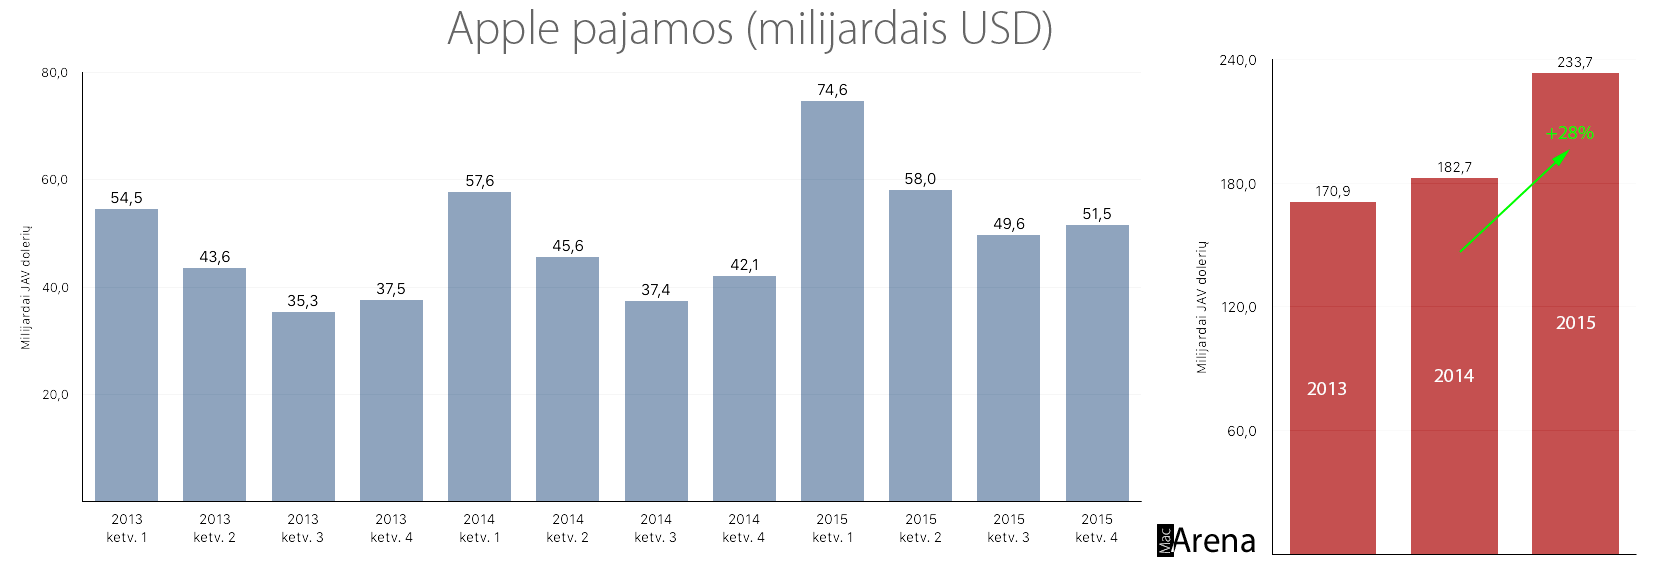 Apple pajamos milijardais USD 2013-2015 metais.